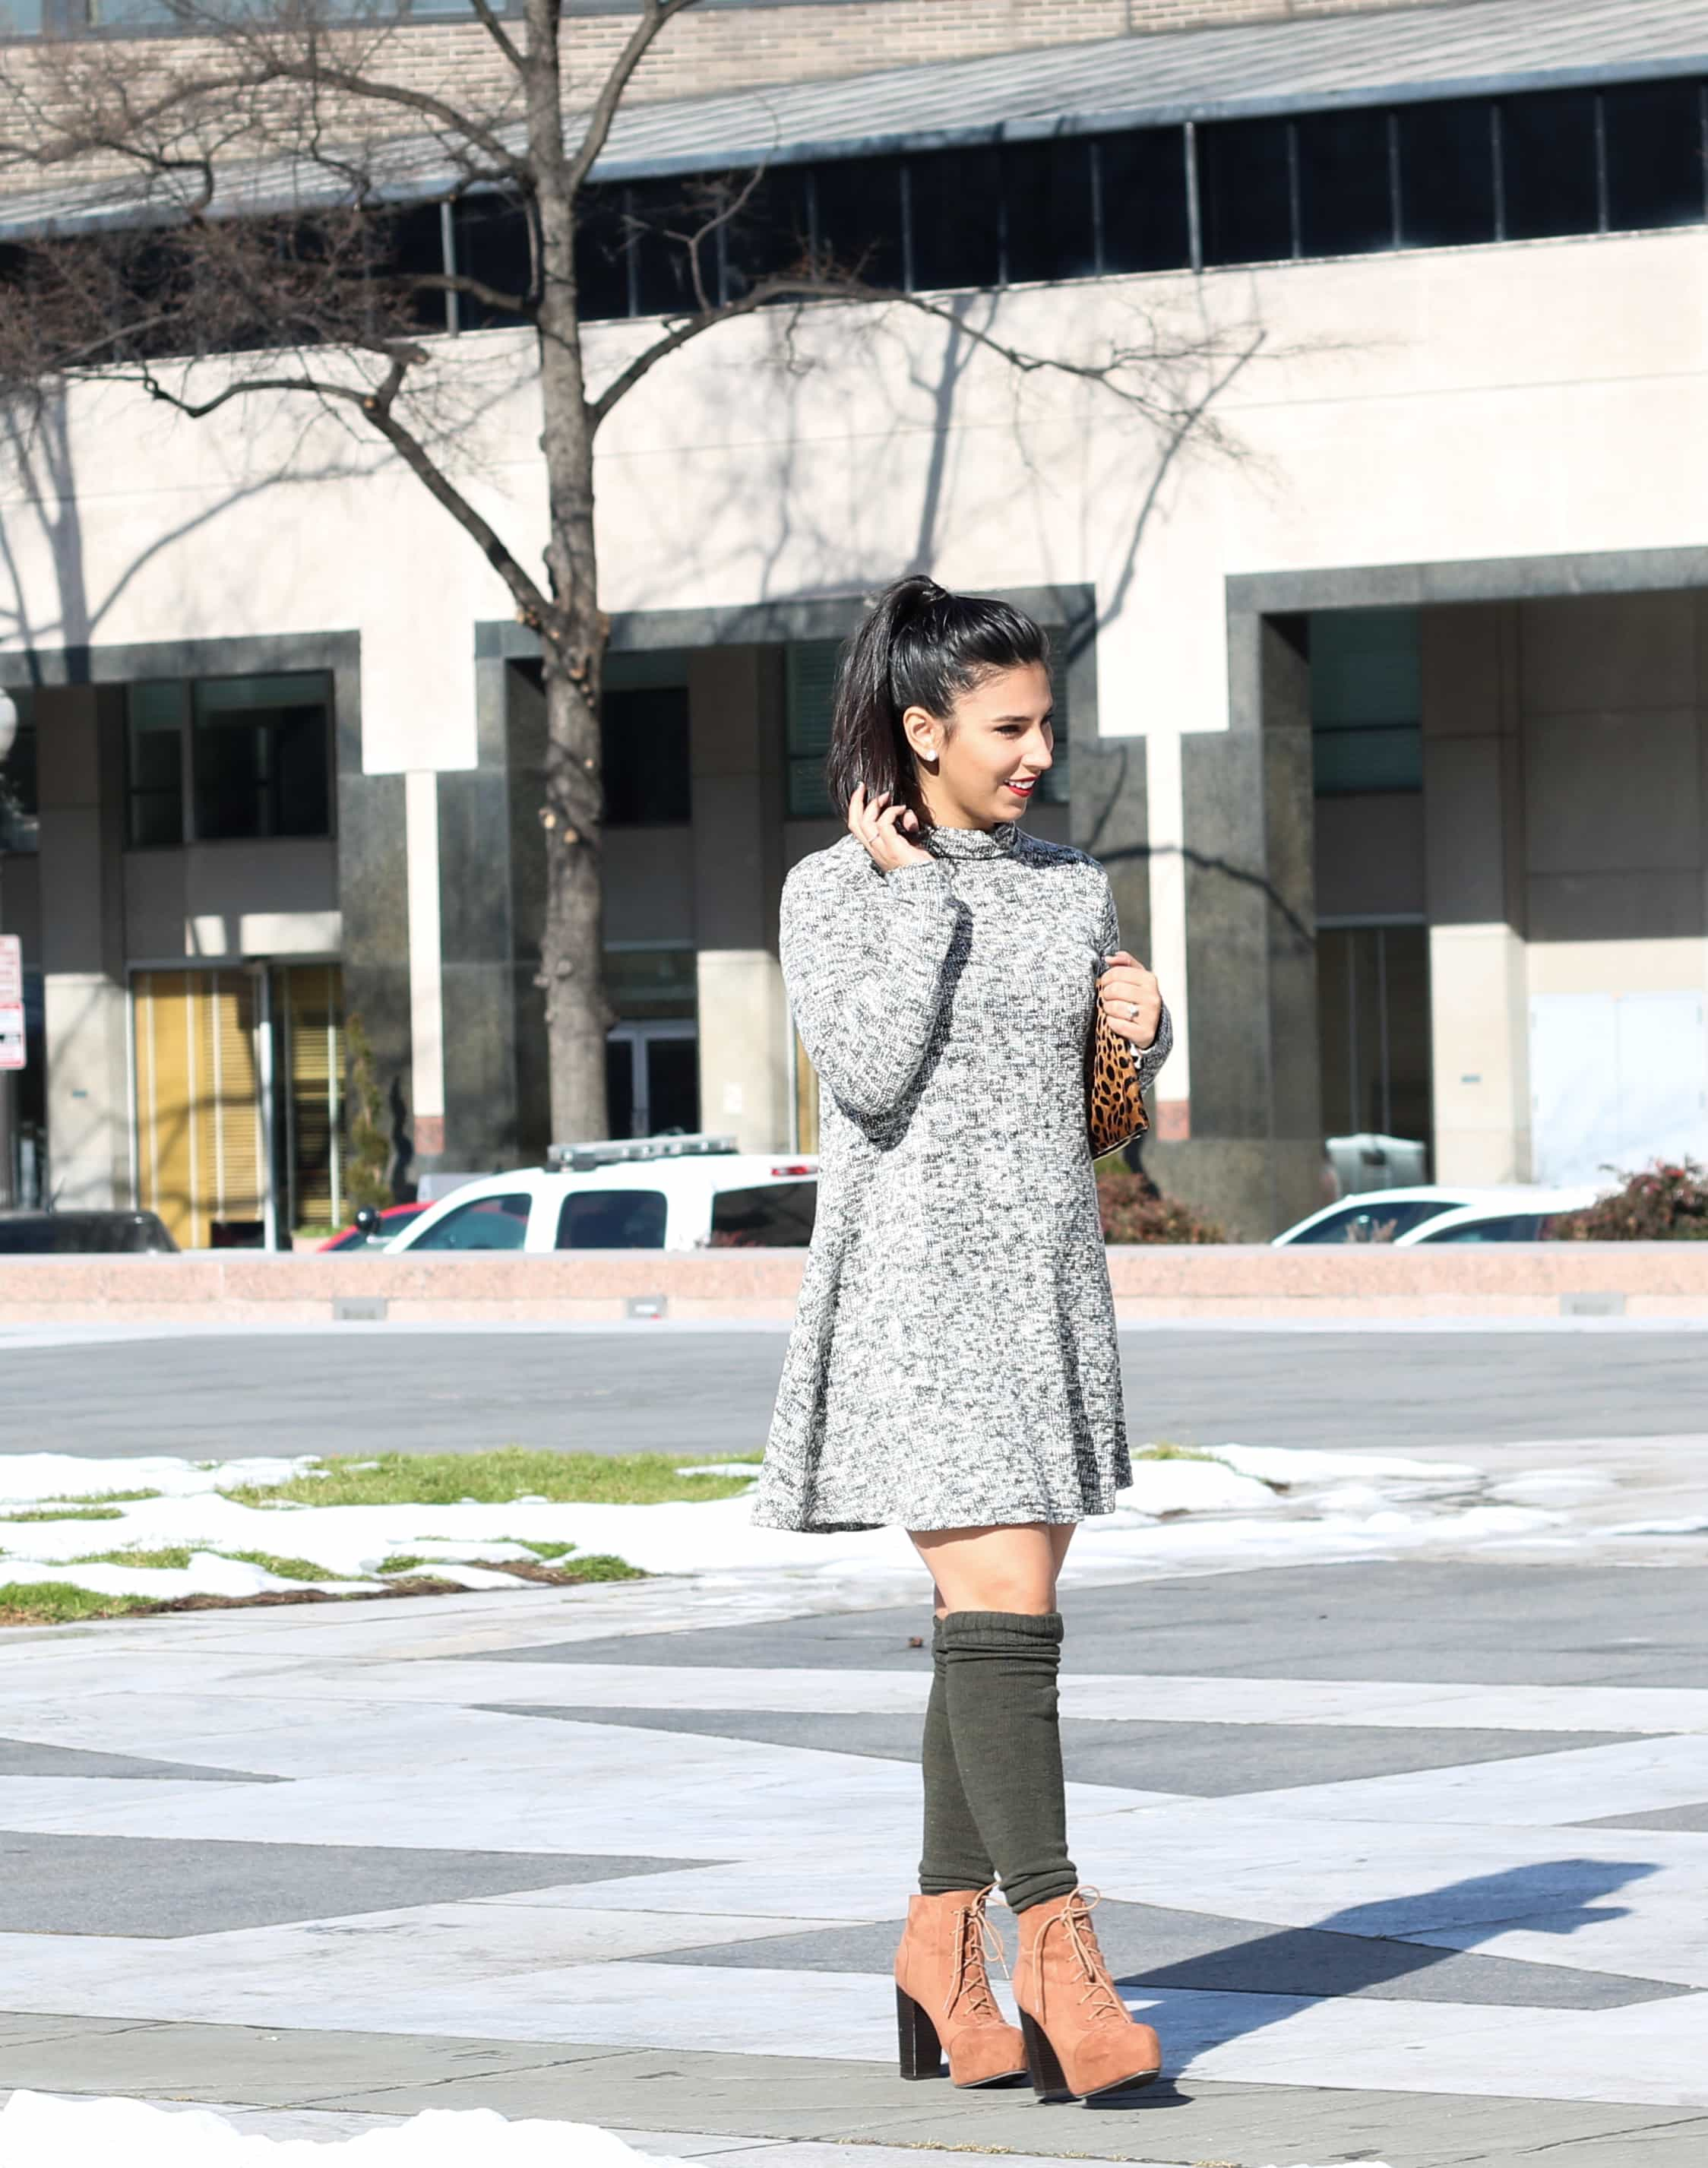 leopard clutch, clare v clutch, marled grey sweater dress, what to wear in dc, winter travel, winter fashion, otk socks, high socks, winter boots, beso stila lipstain